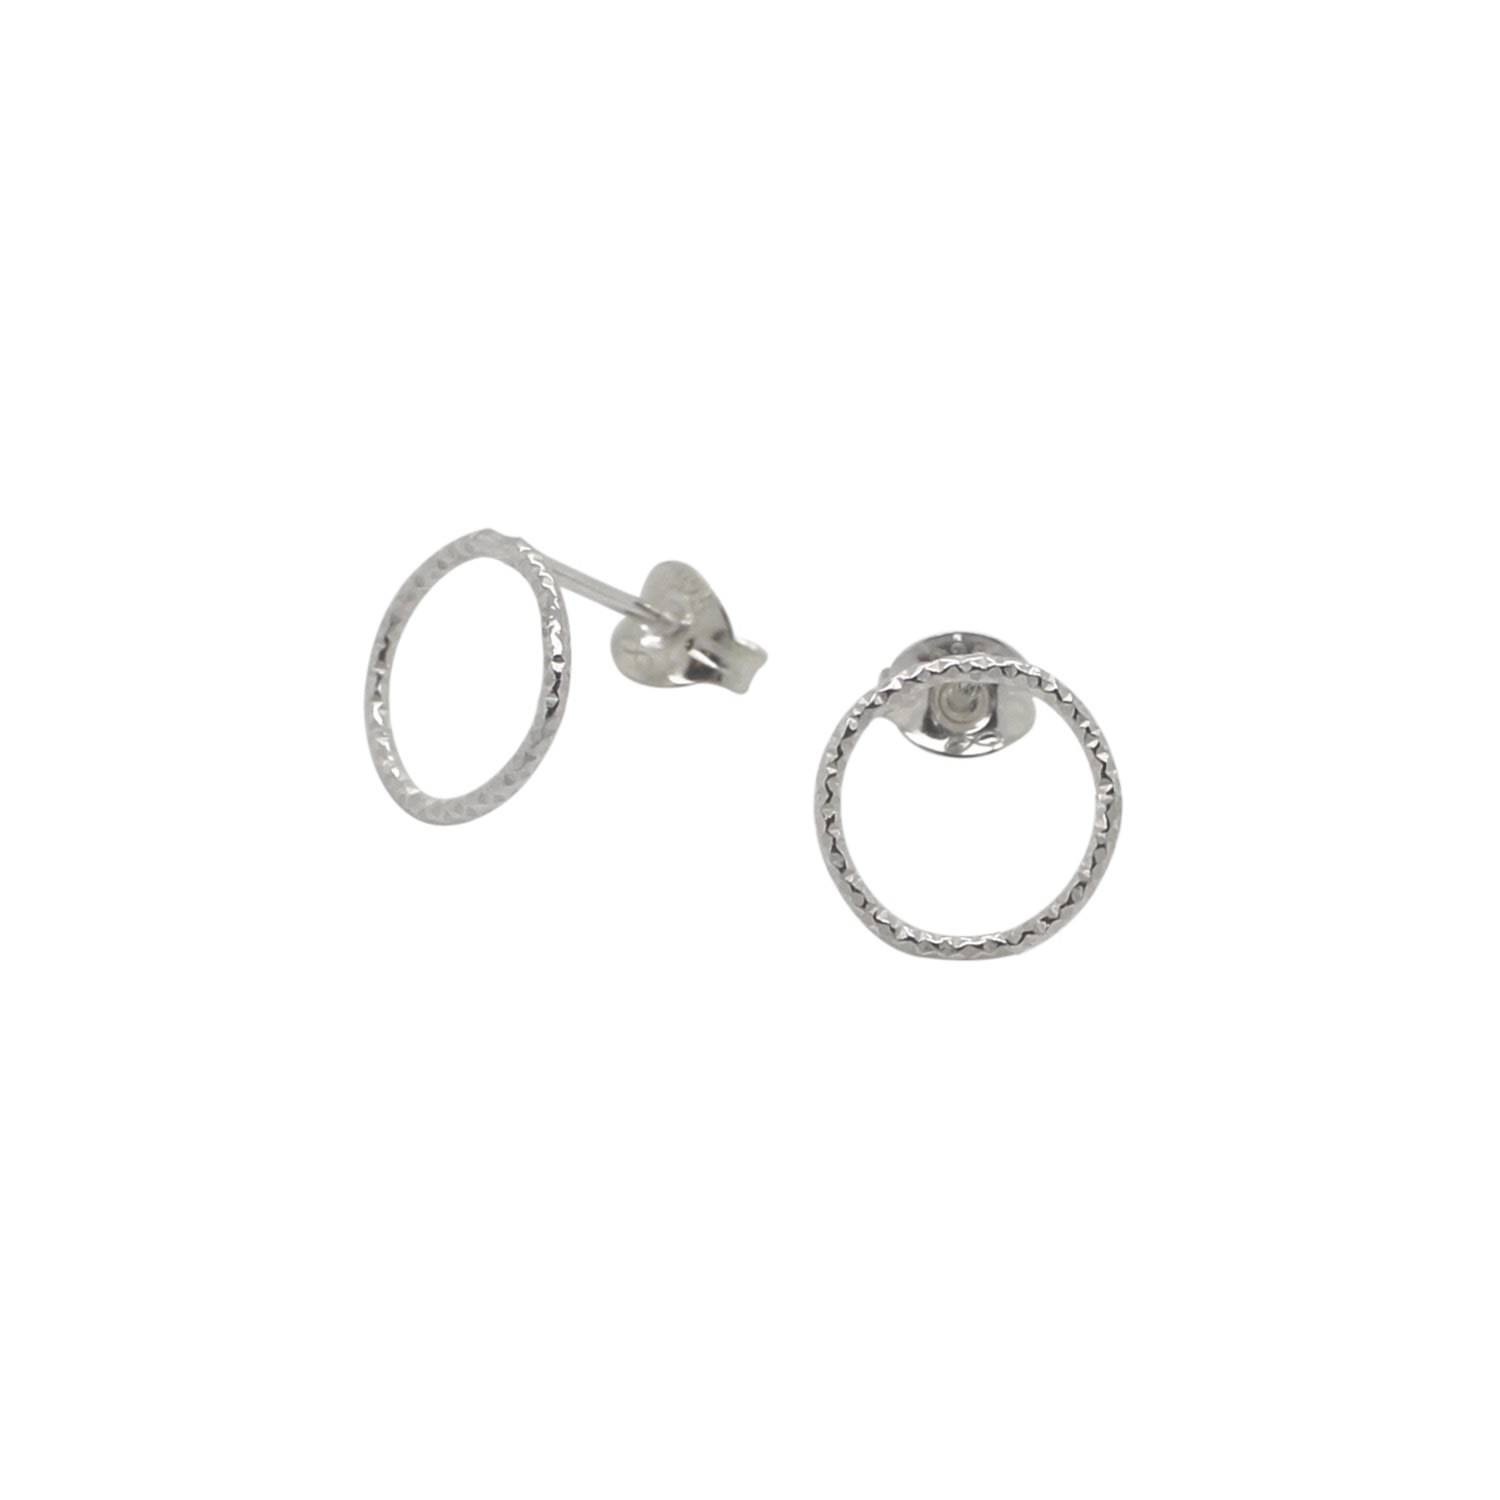 Lucy Ashton Jewellery - Circle Stud Earrings Sterling Silver